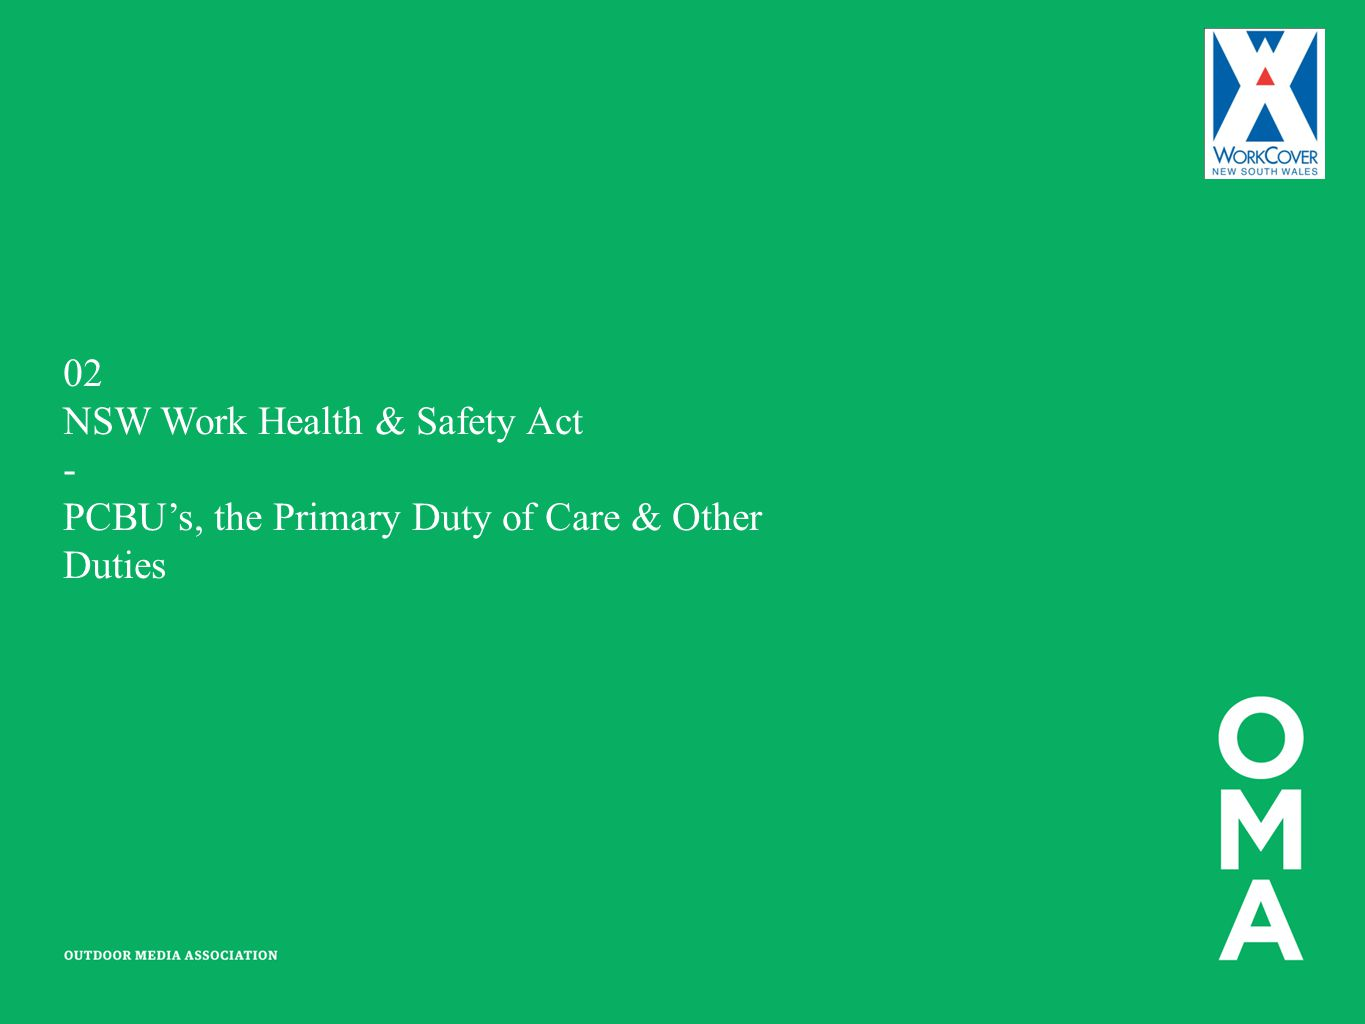 02 NSW Work Health & Safety Act - PCBU's, the Primary Duty of Care & Other Duties